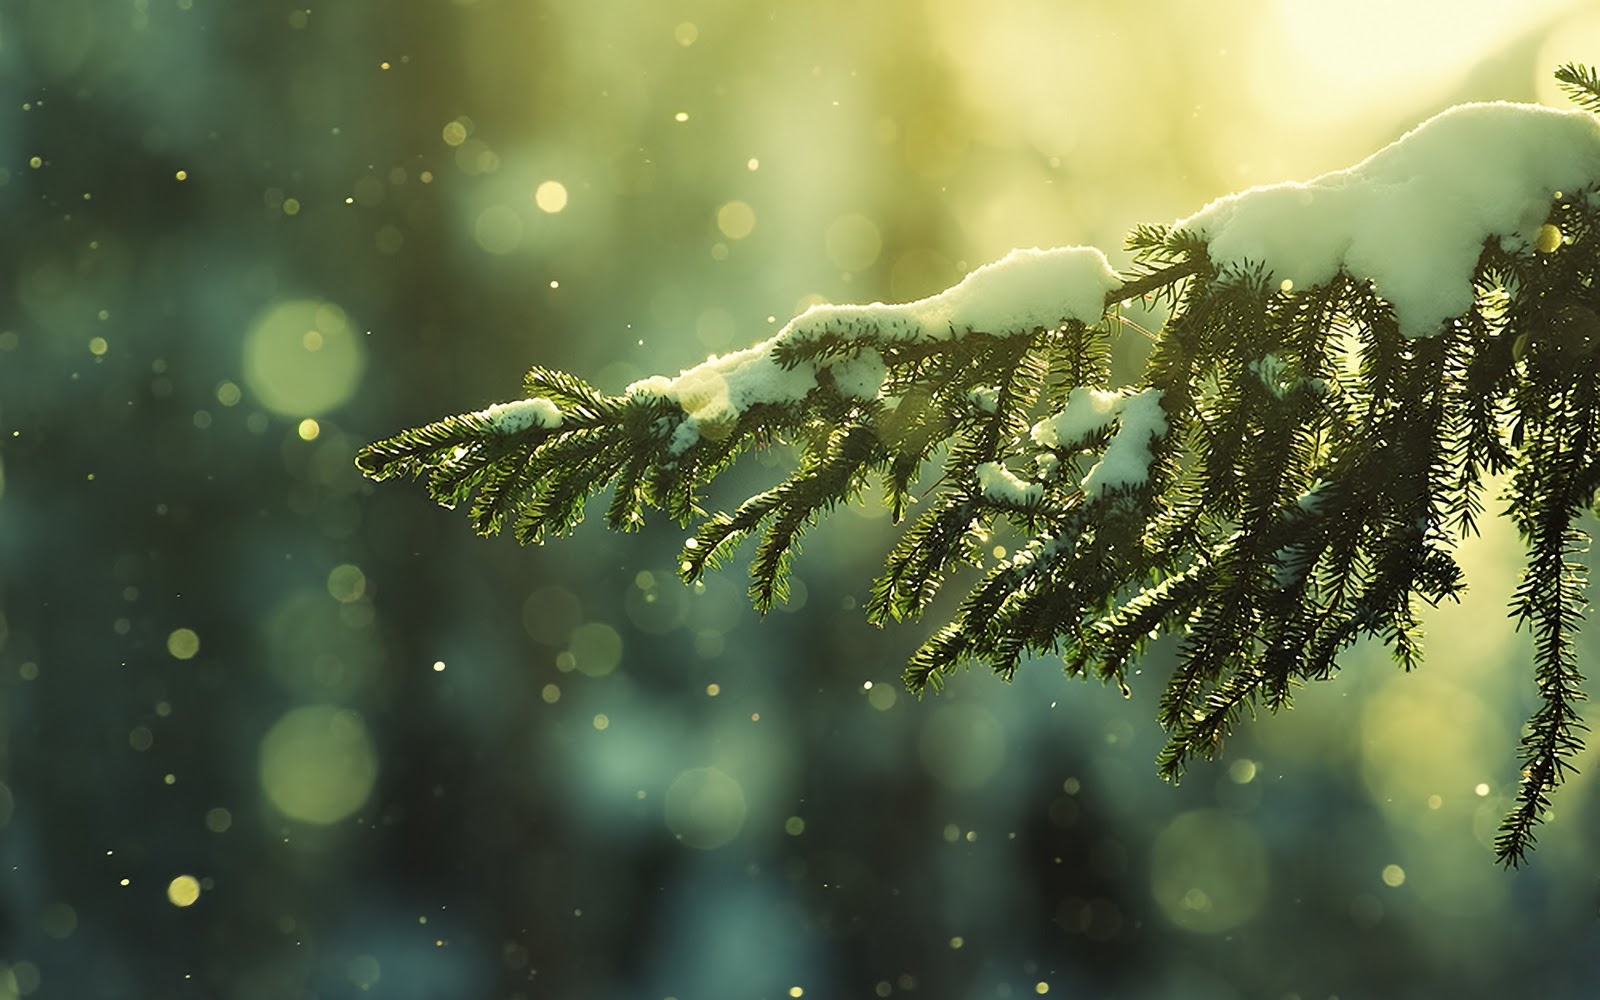 Winter Christmas Wallpaper With Leafs Of A Pinetree Covered Snow